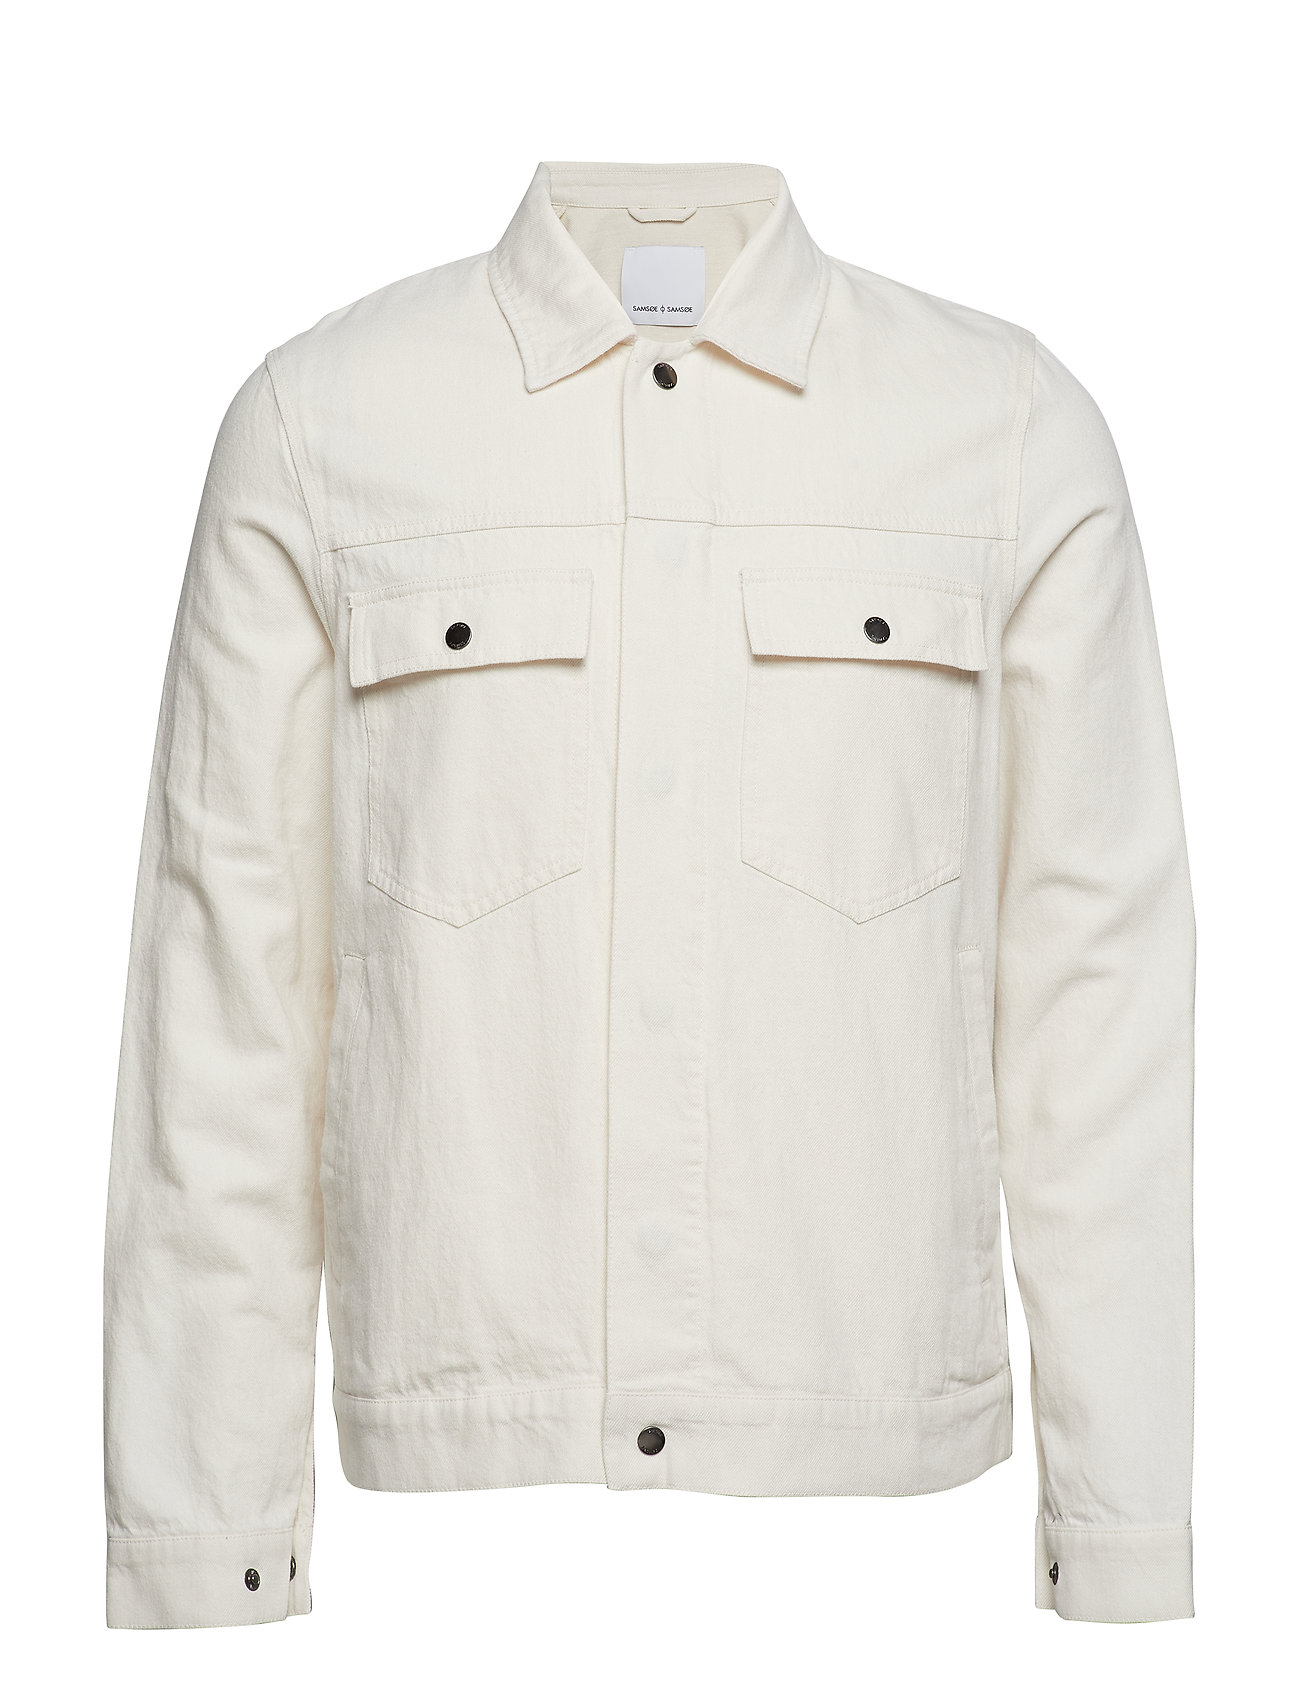 Samsøe & Samsøe Gram jacket 10912 - CLEAR CREAM